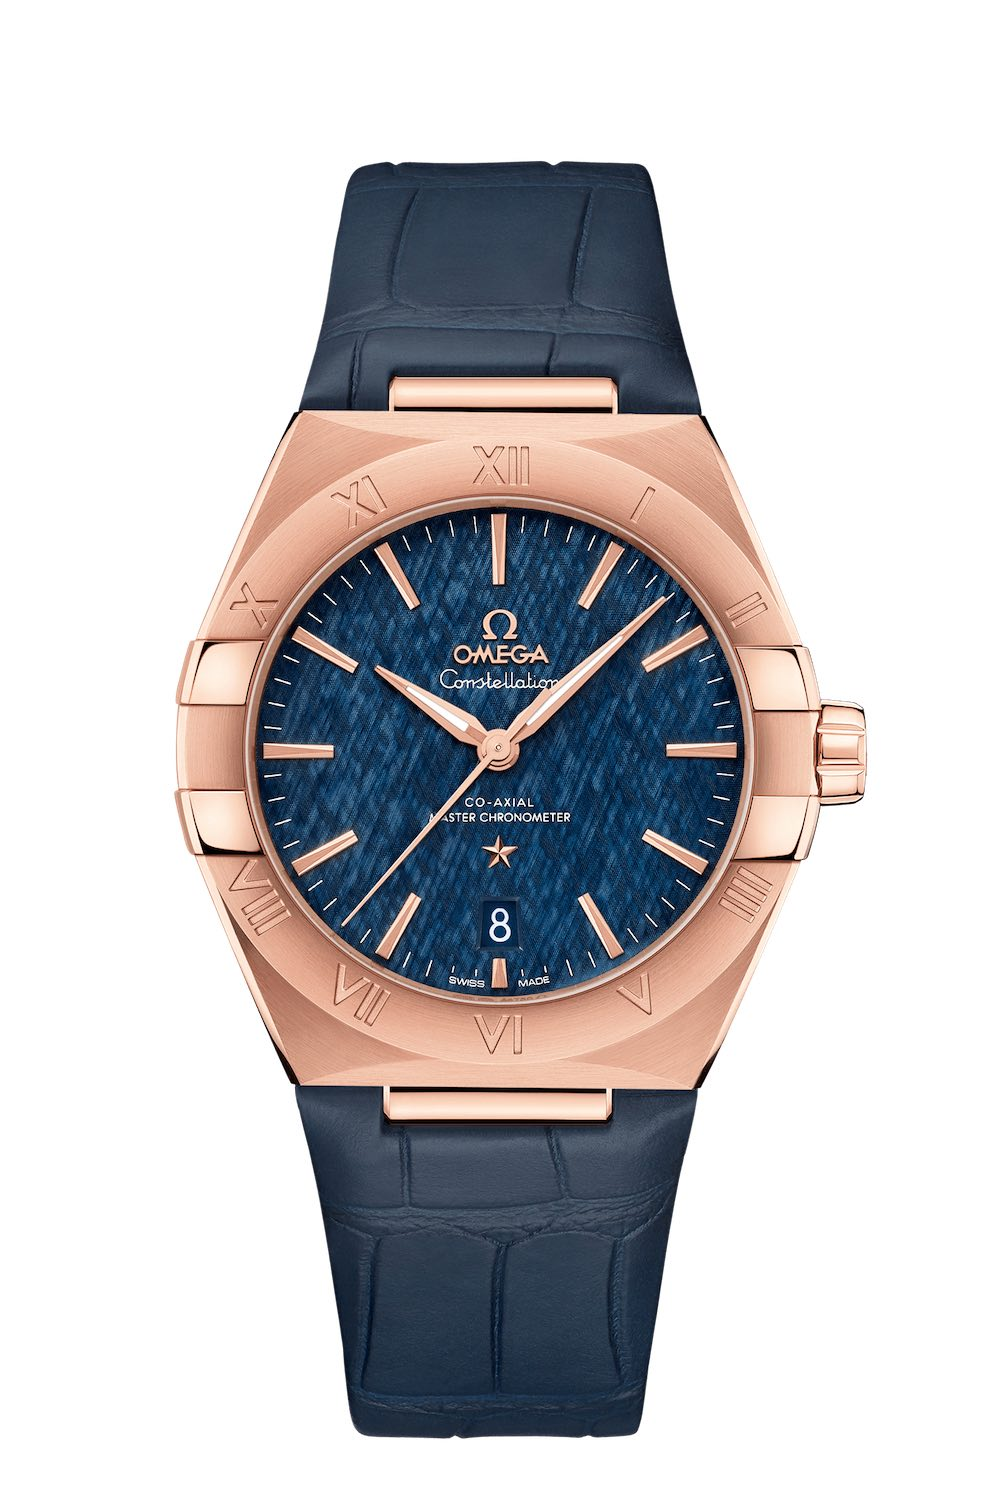 omega-constellation-13153392003001-1-product-zoom